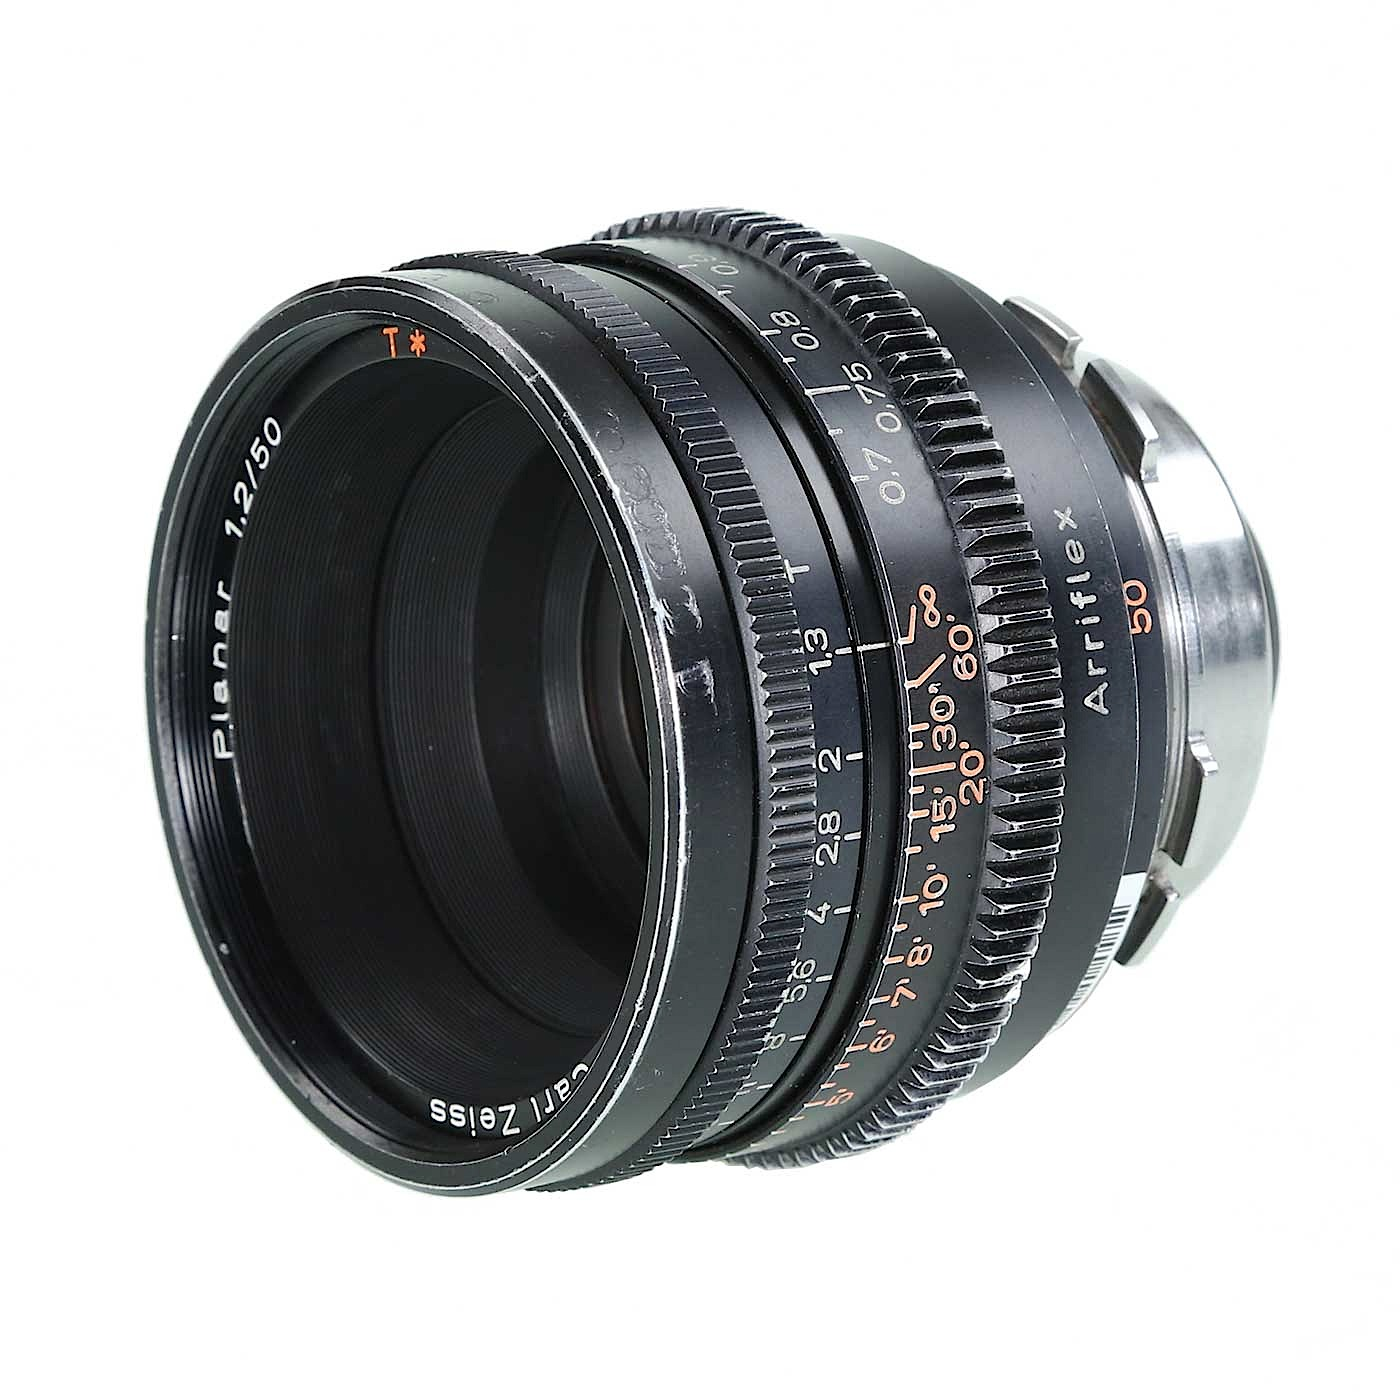 Zeiss 50mm T1.3 (Superspeed) Prime Lens